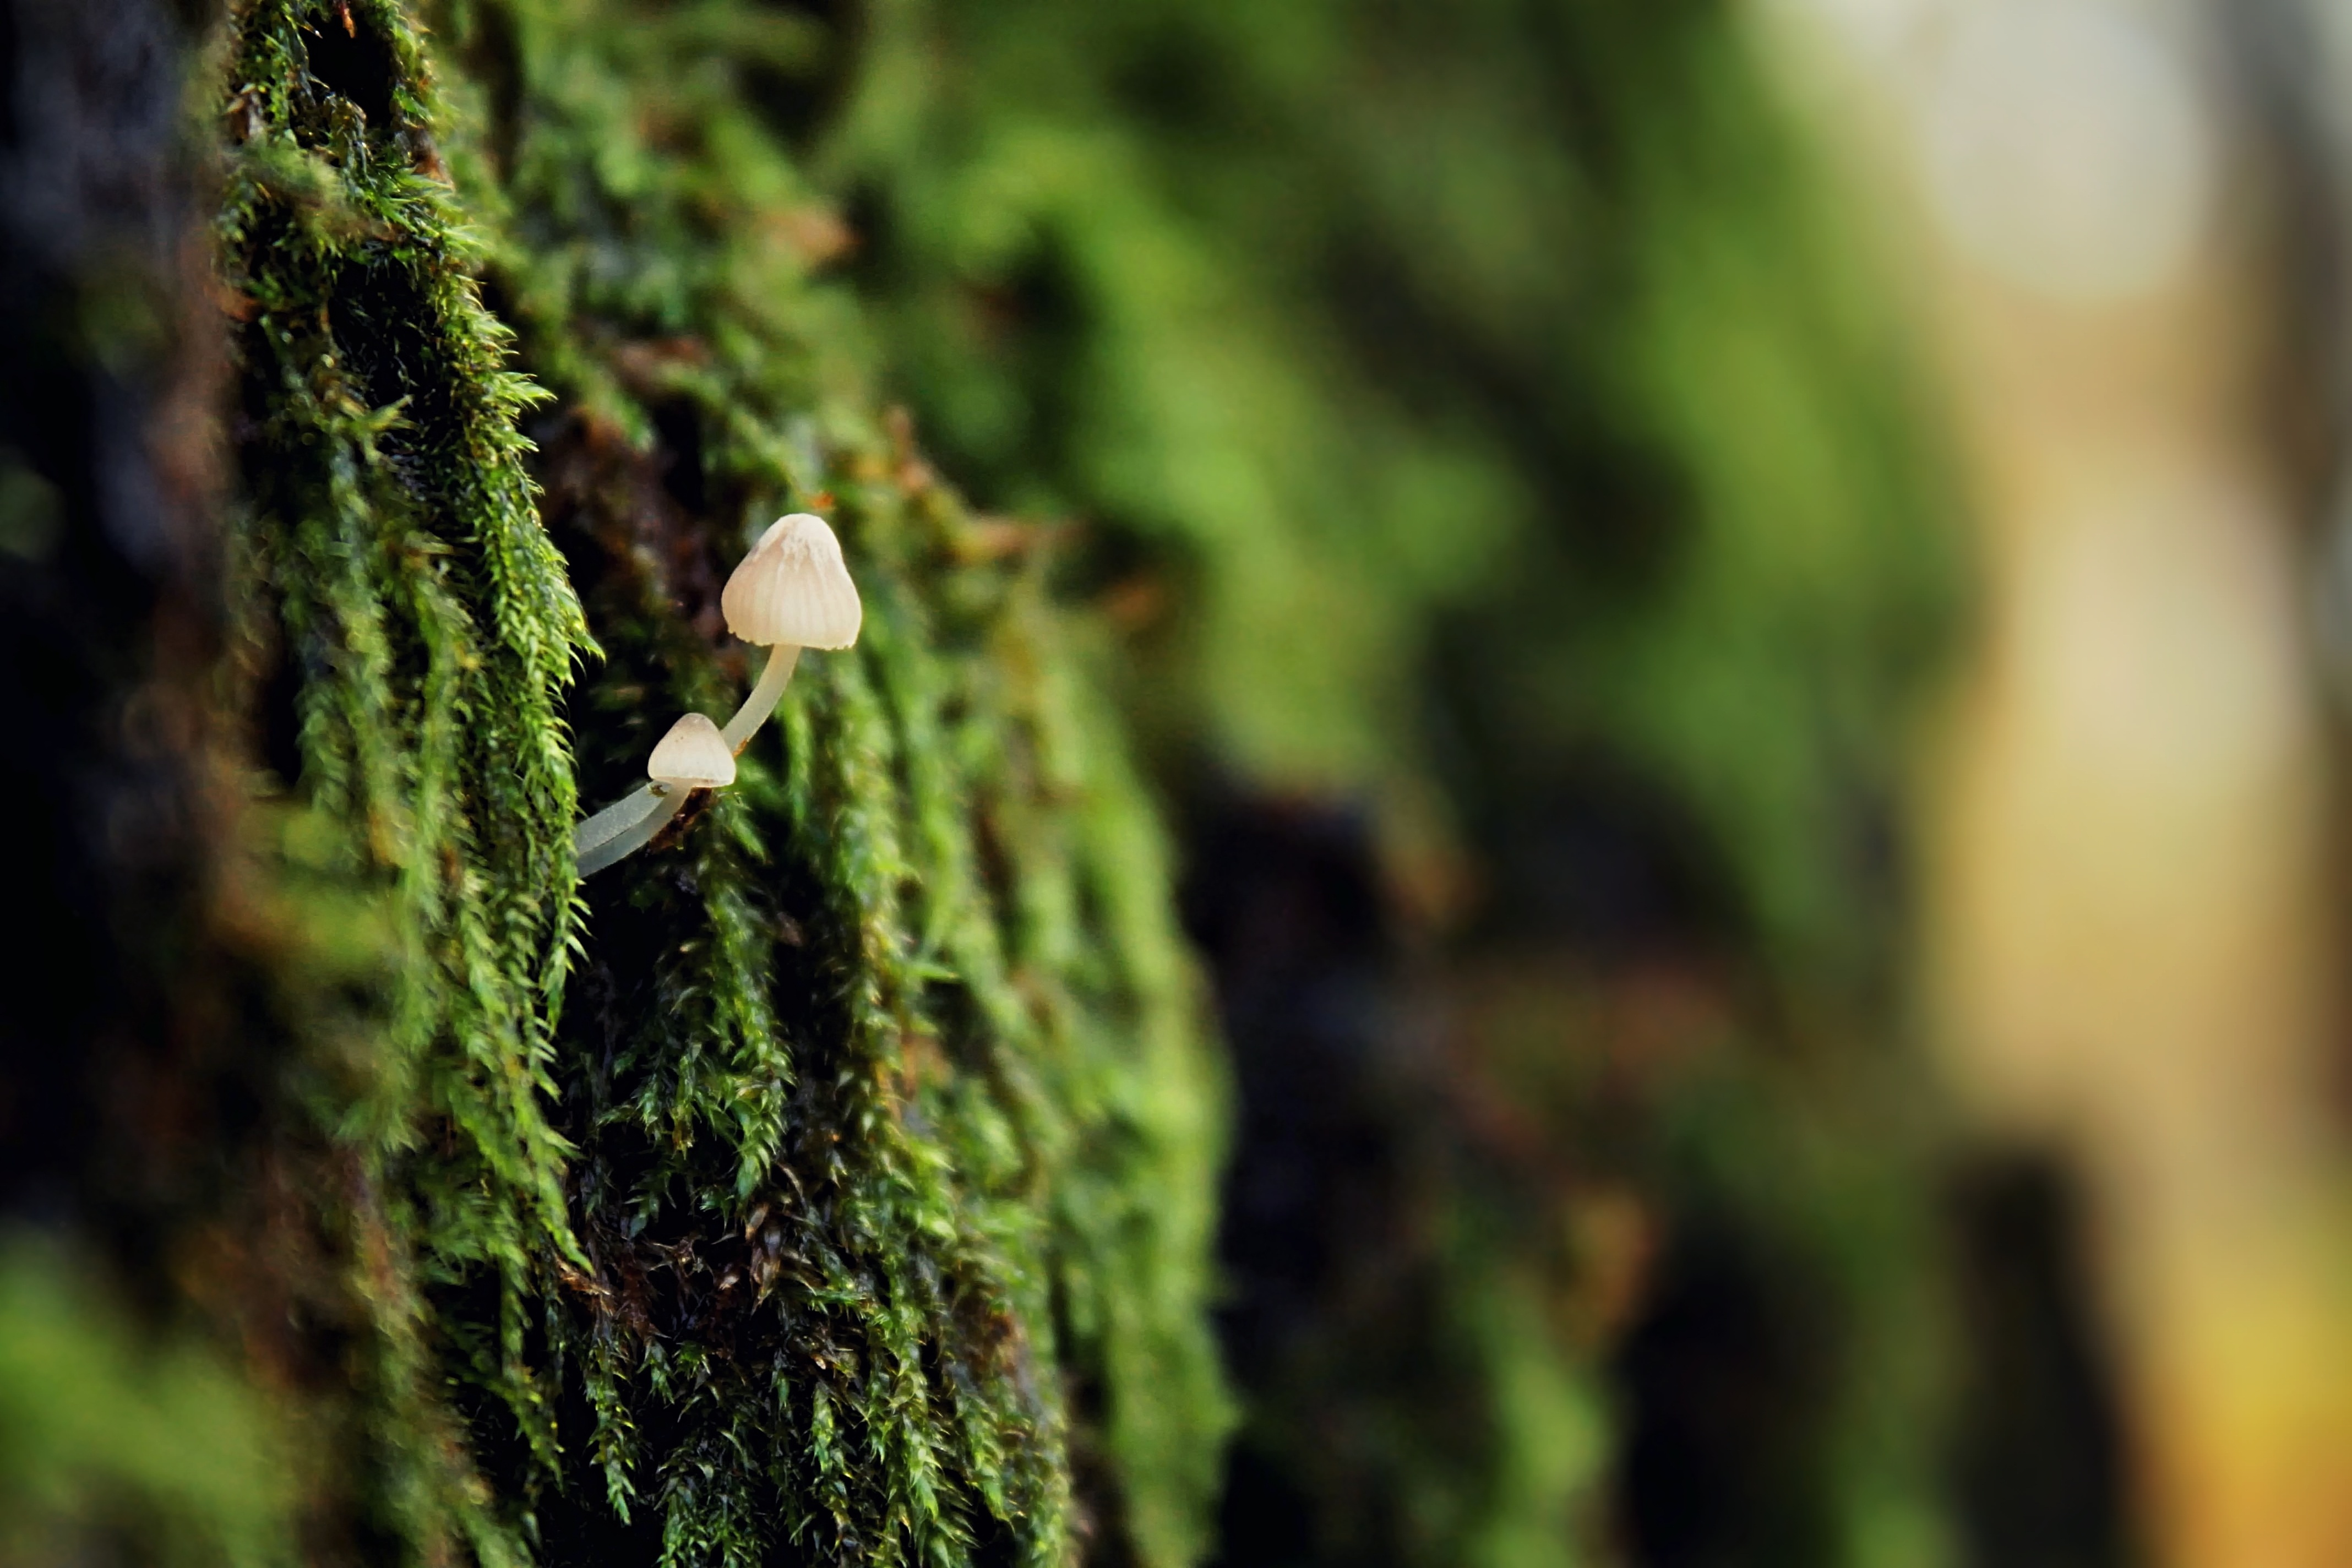 Close up on mushroom groing in moss. Photo.